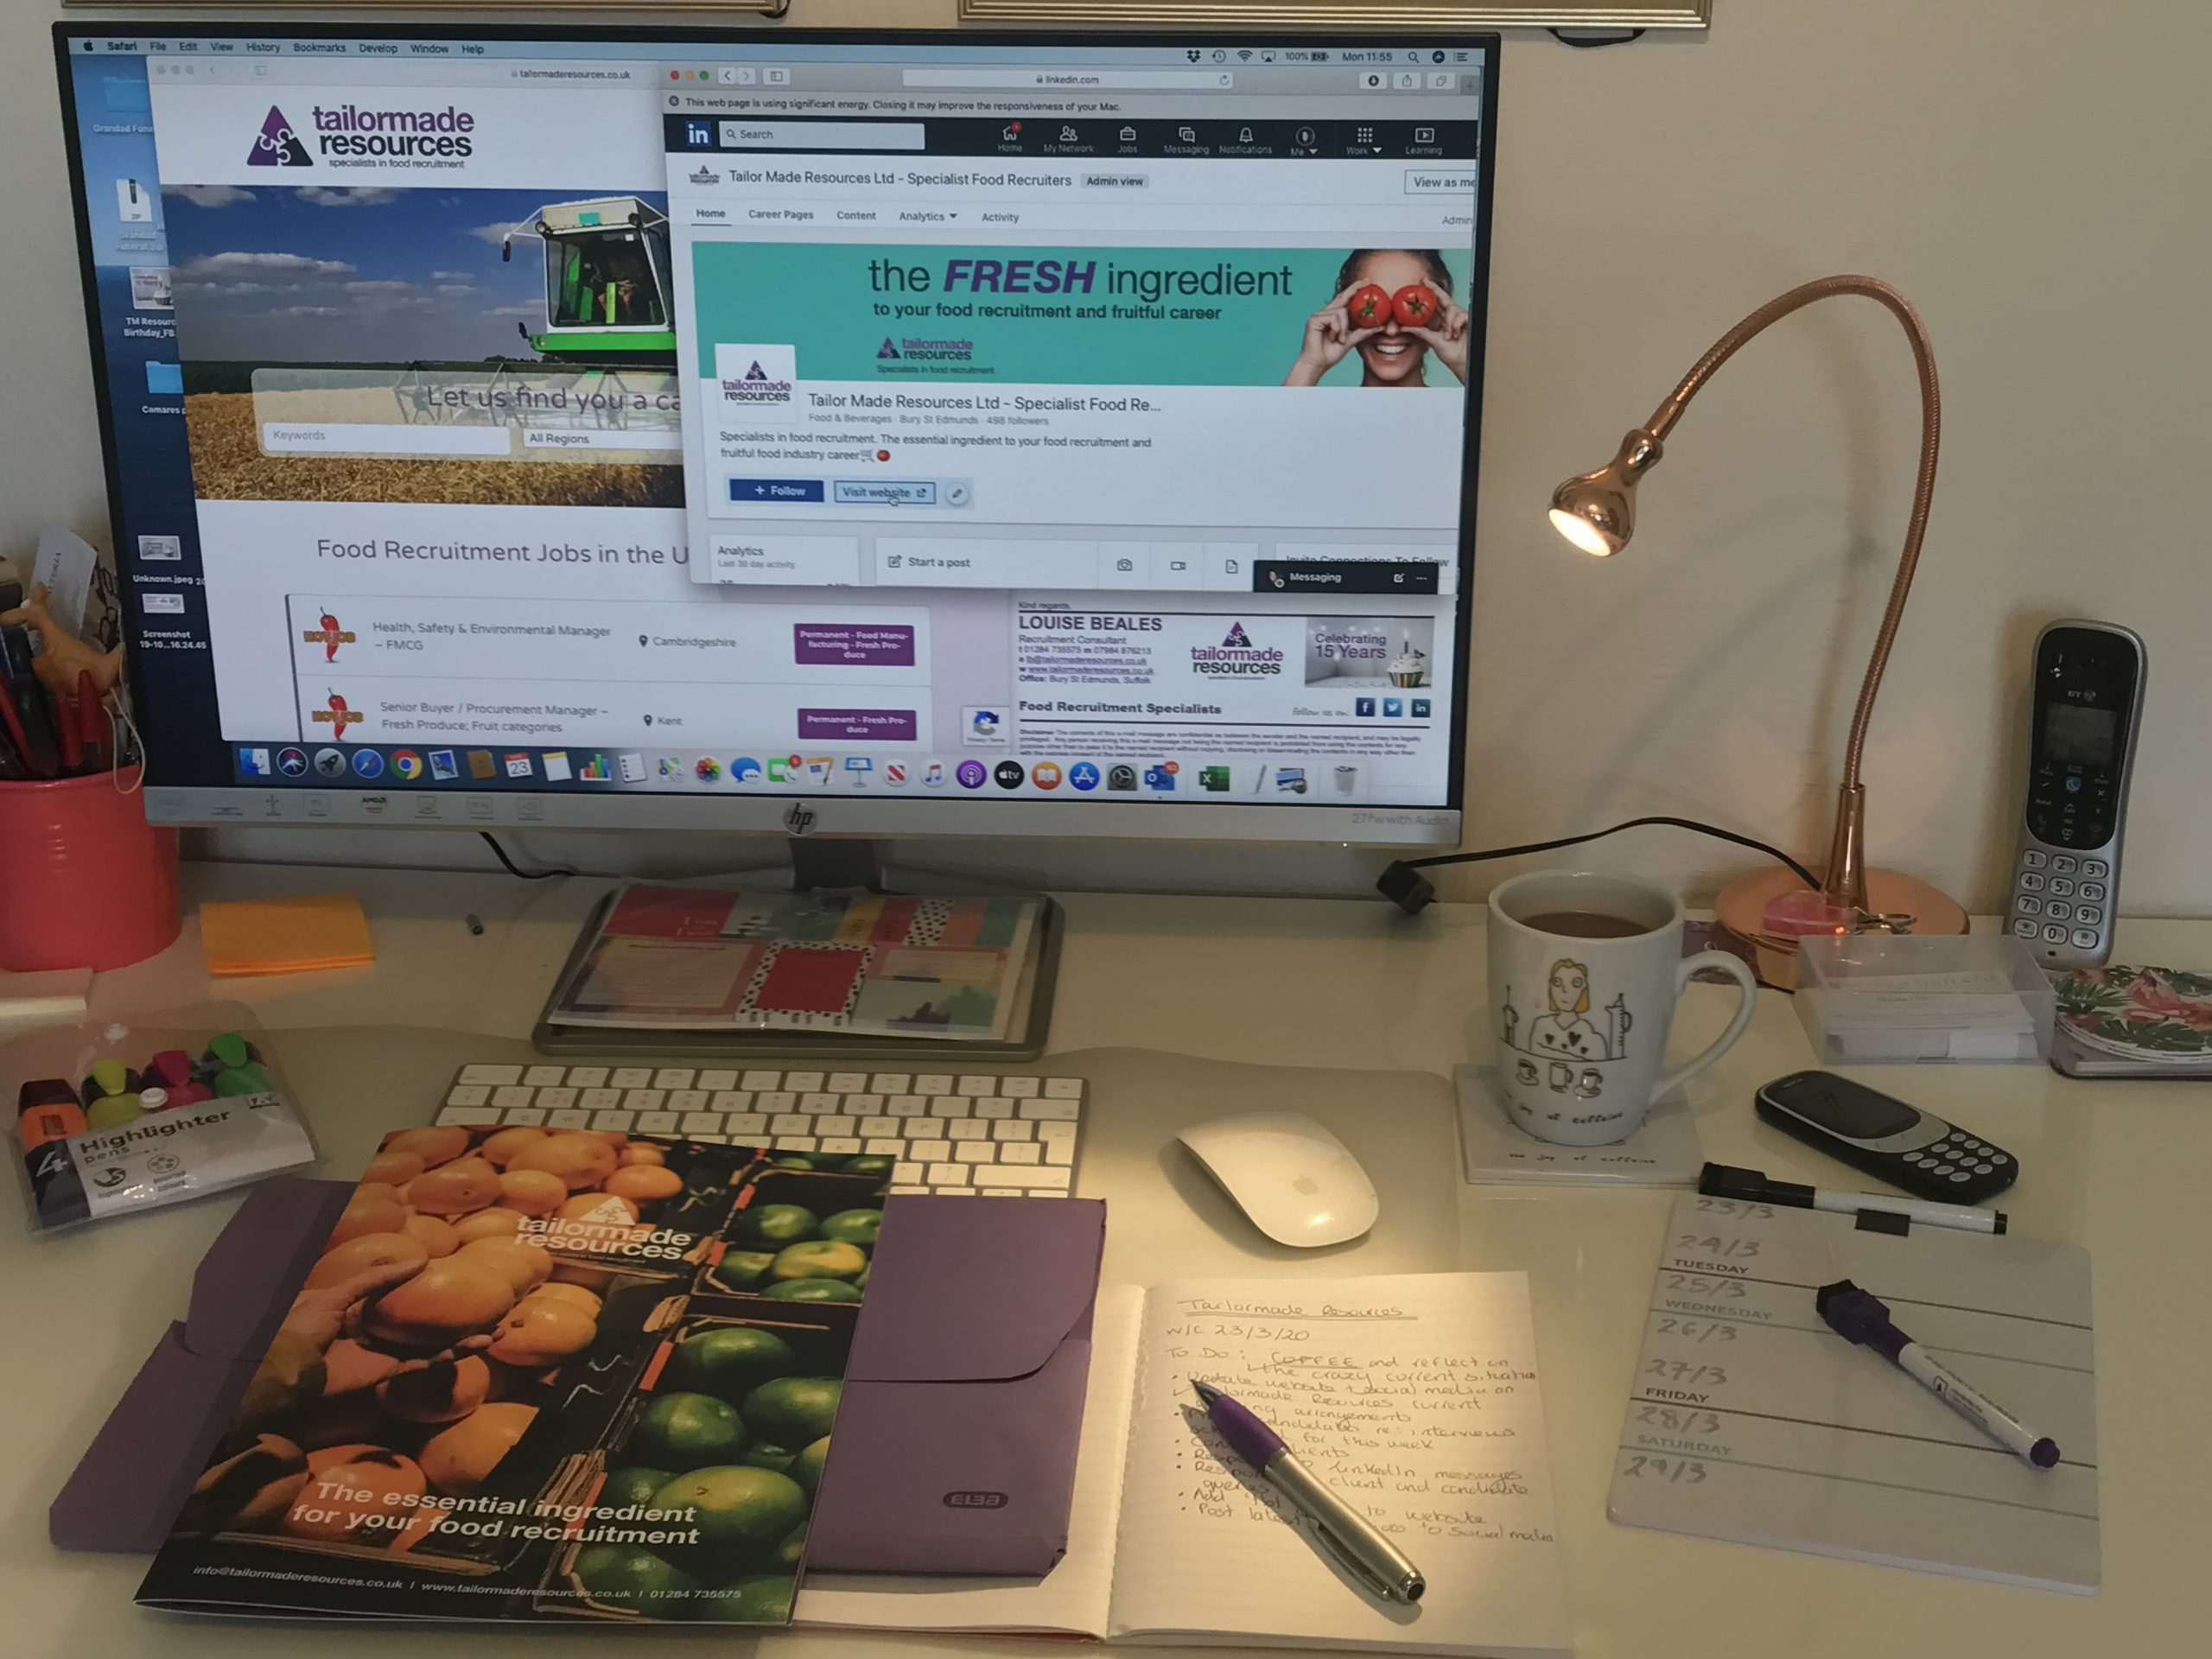 Tailormade Resources Working from home